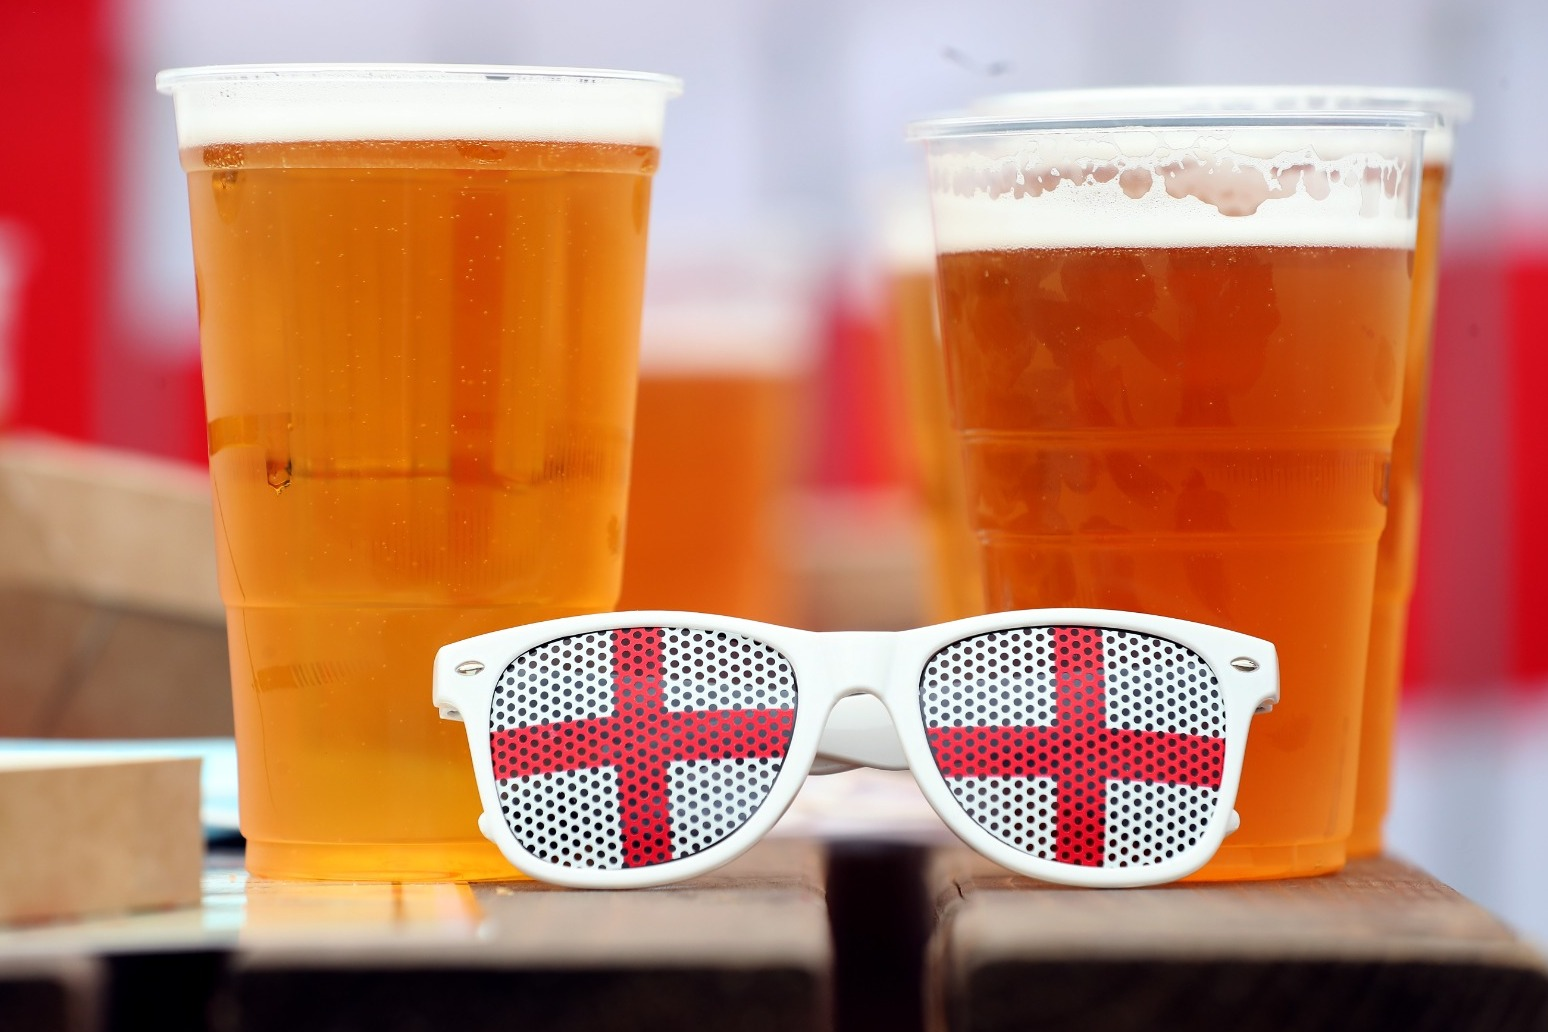 England fans expected to buy more than 50,000 pints a minute during match tonight